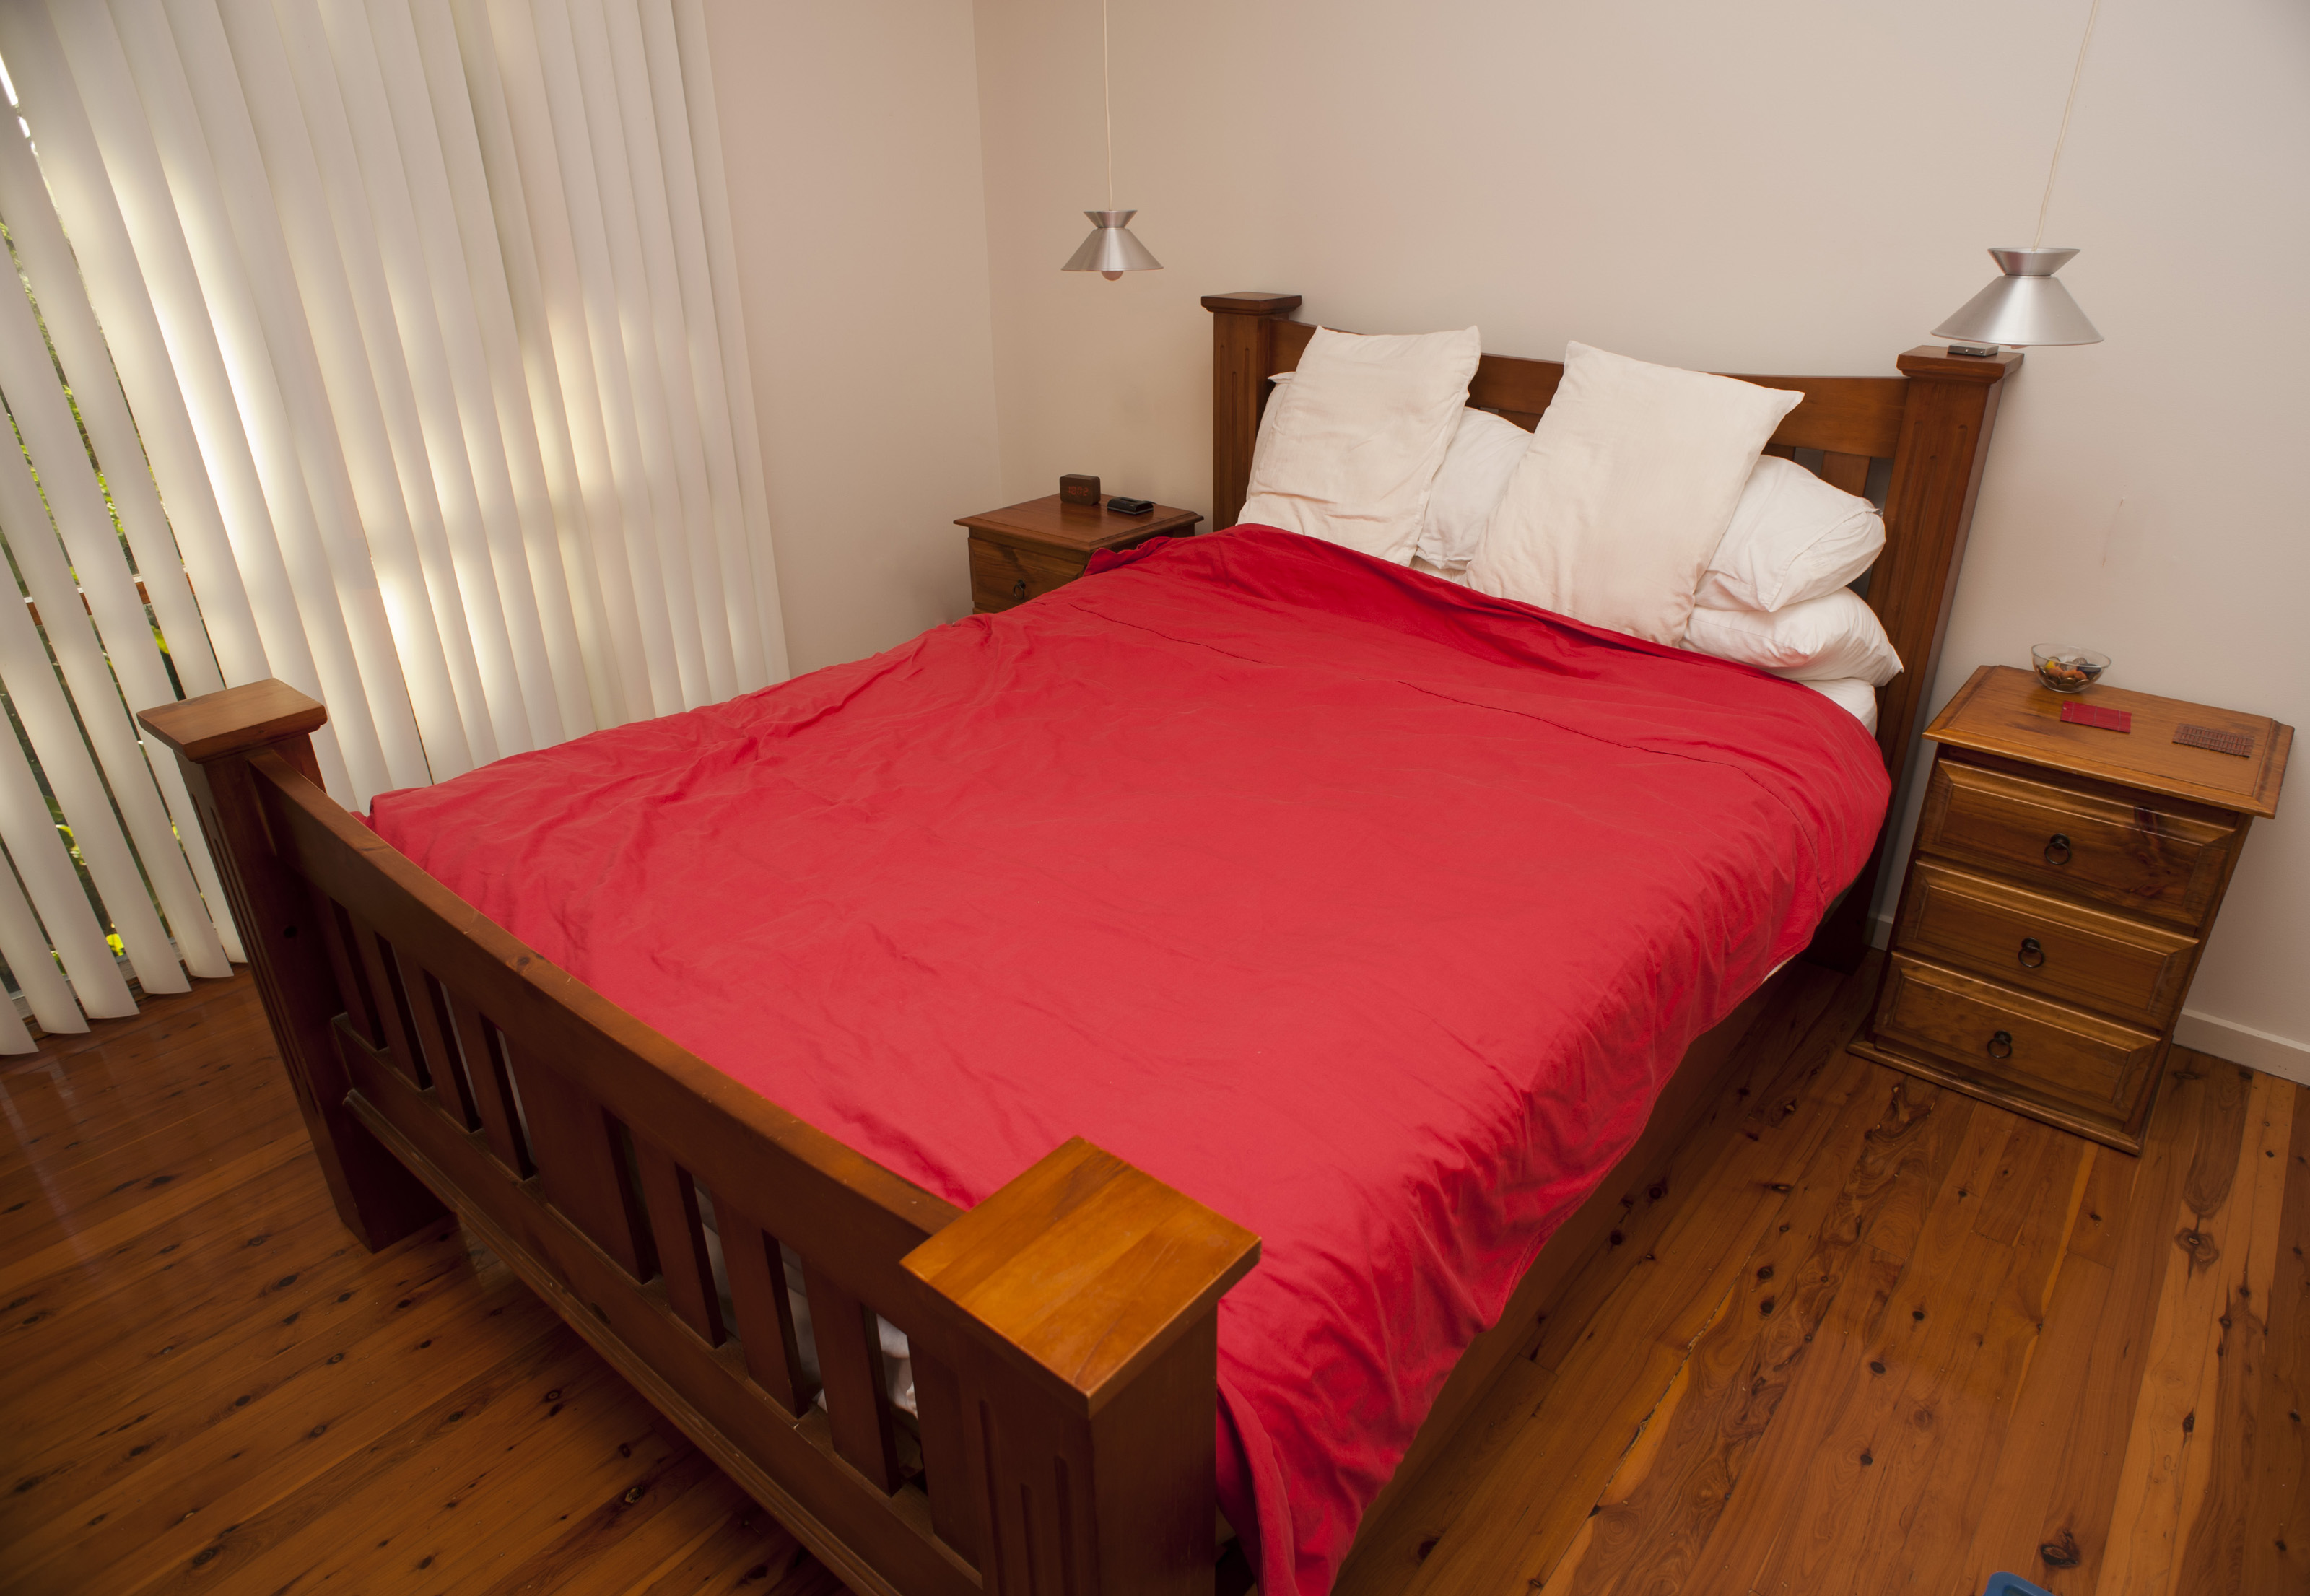 Free Stock Photo 8907 Old fashioned wooden bed